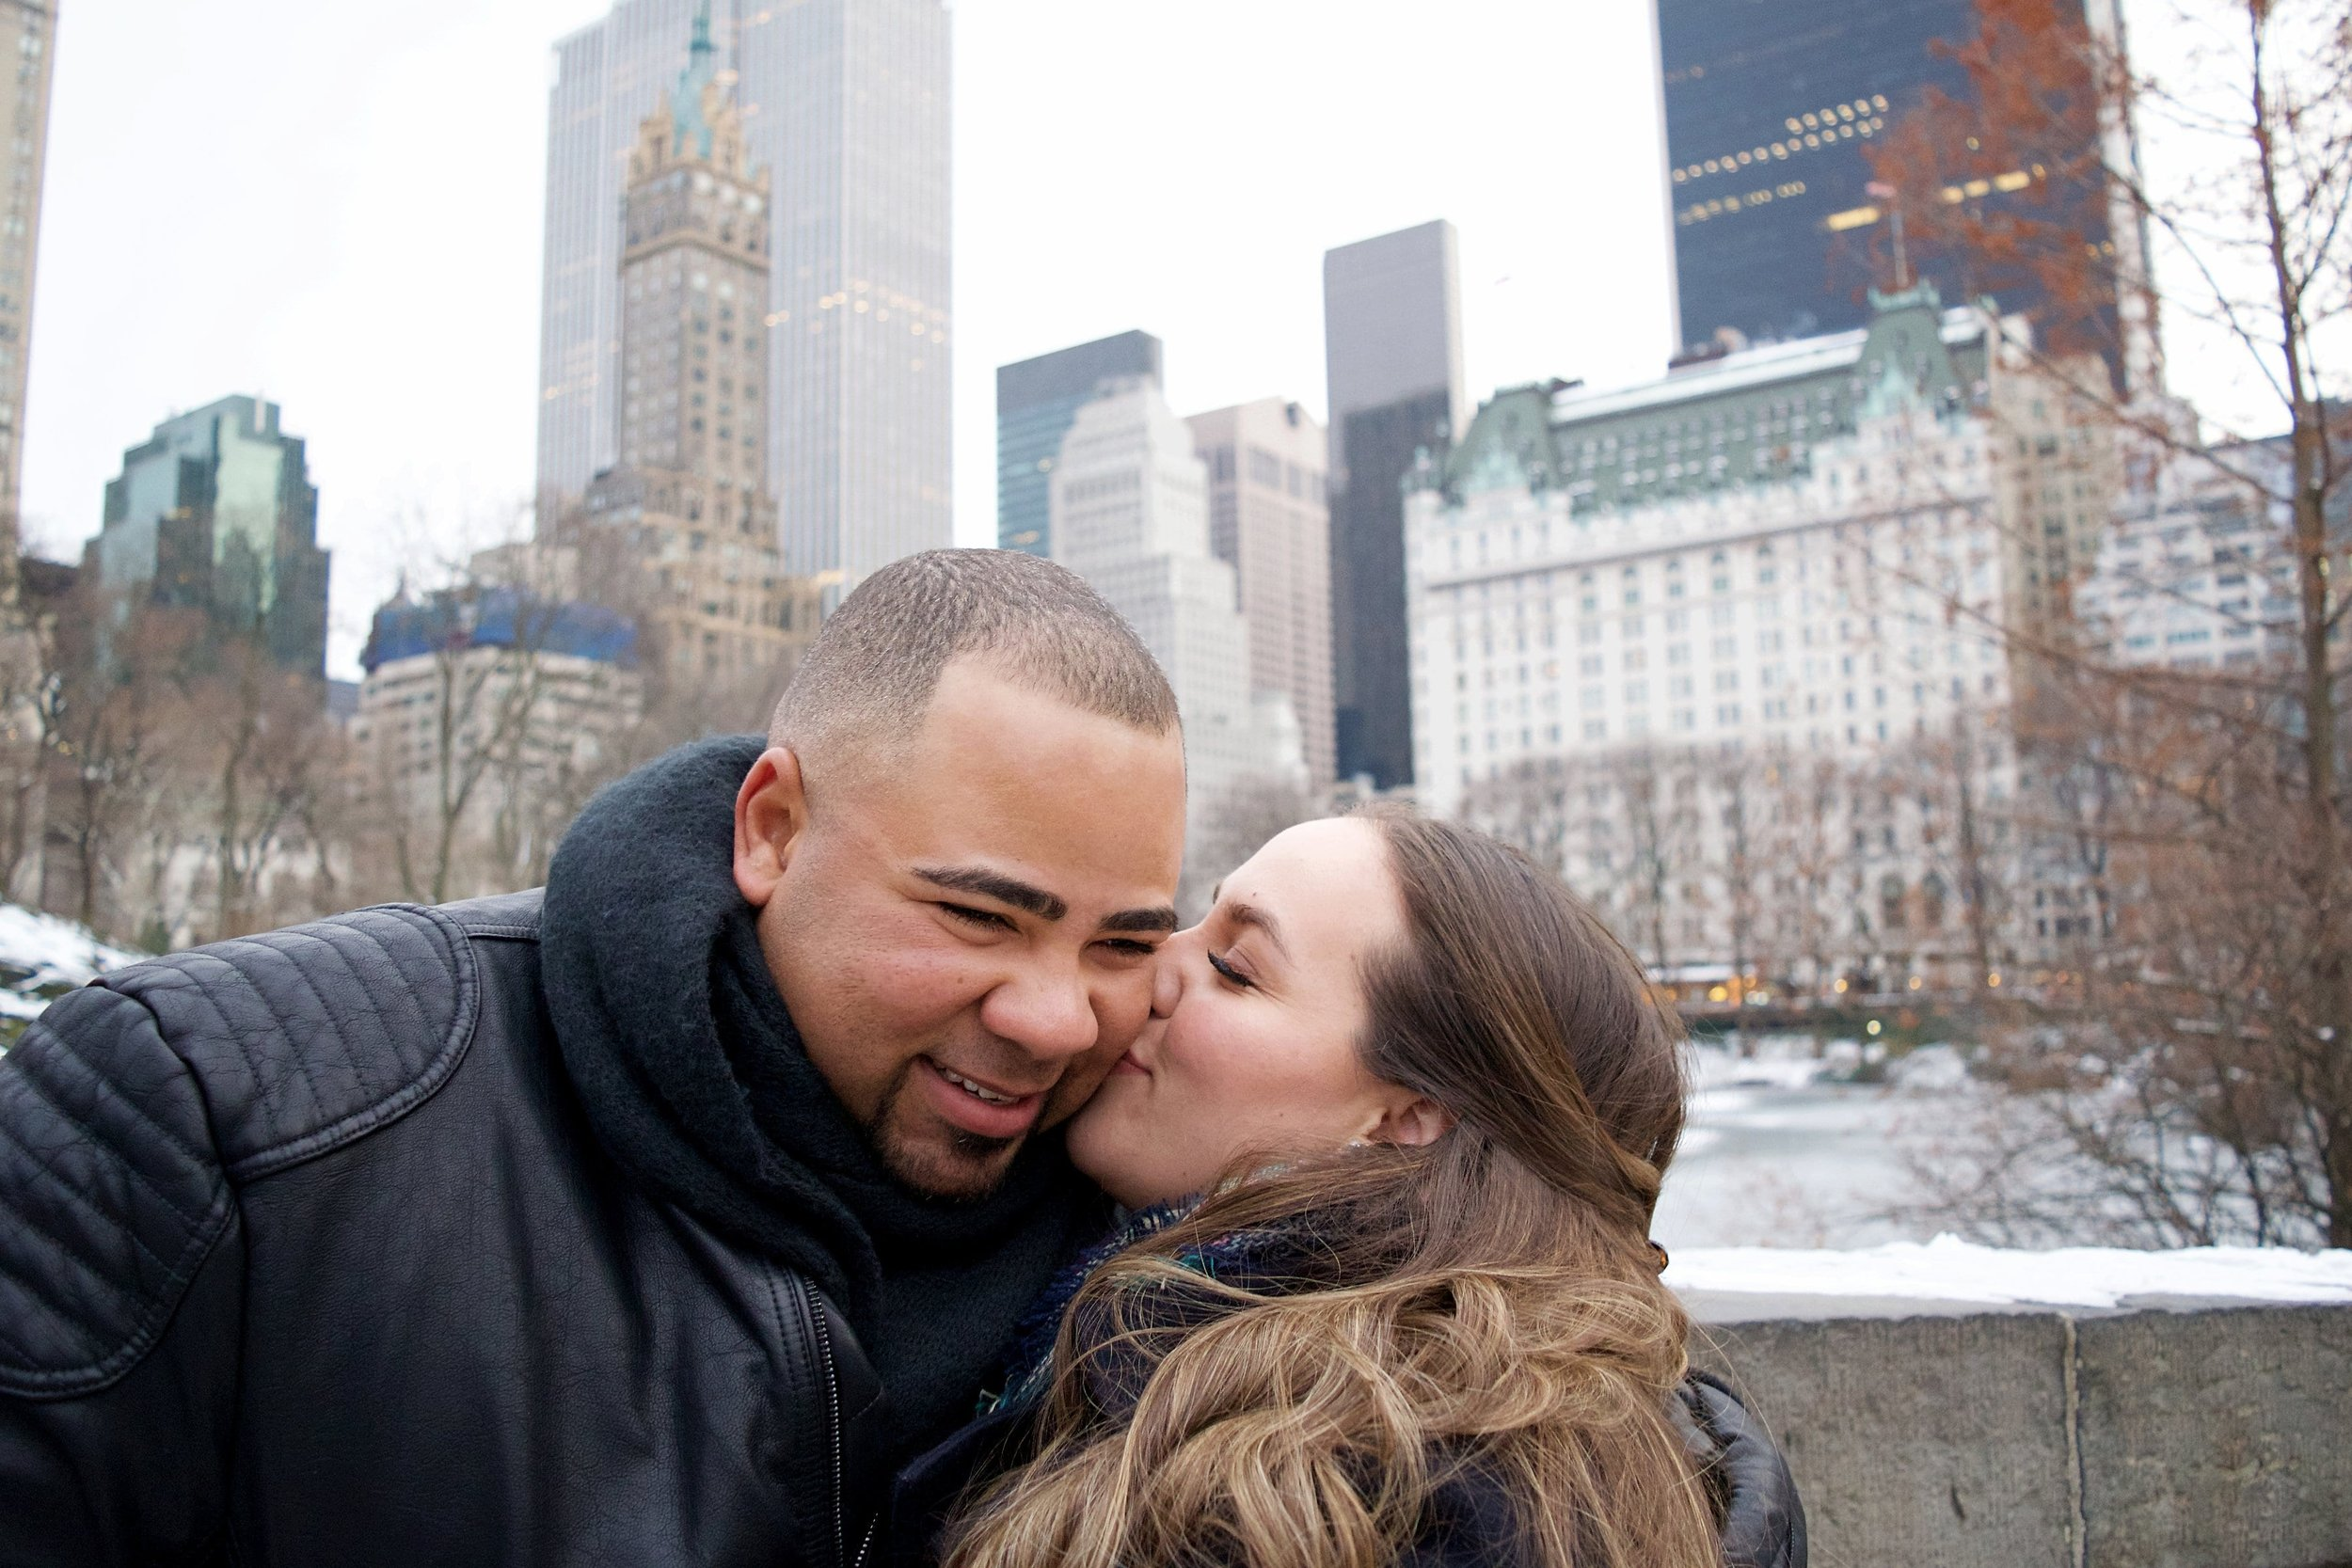 Central Park Engagement Couples Photographer, Best Friends in Love Photography Session